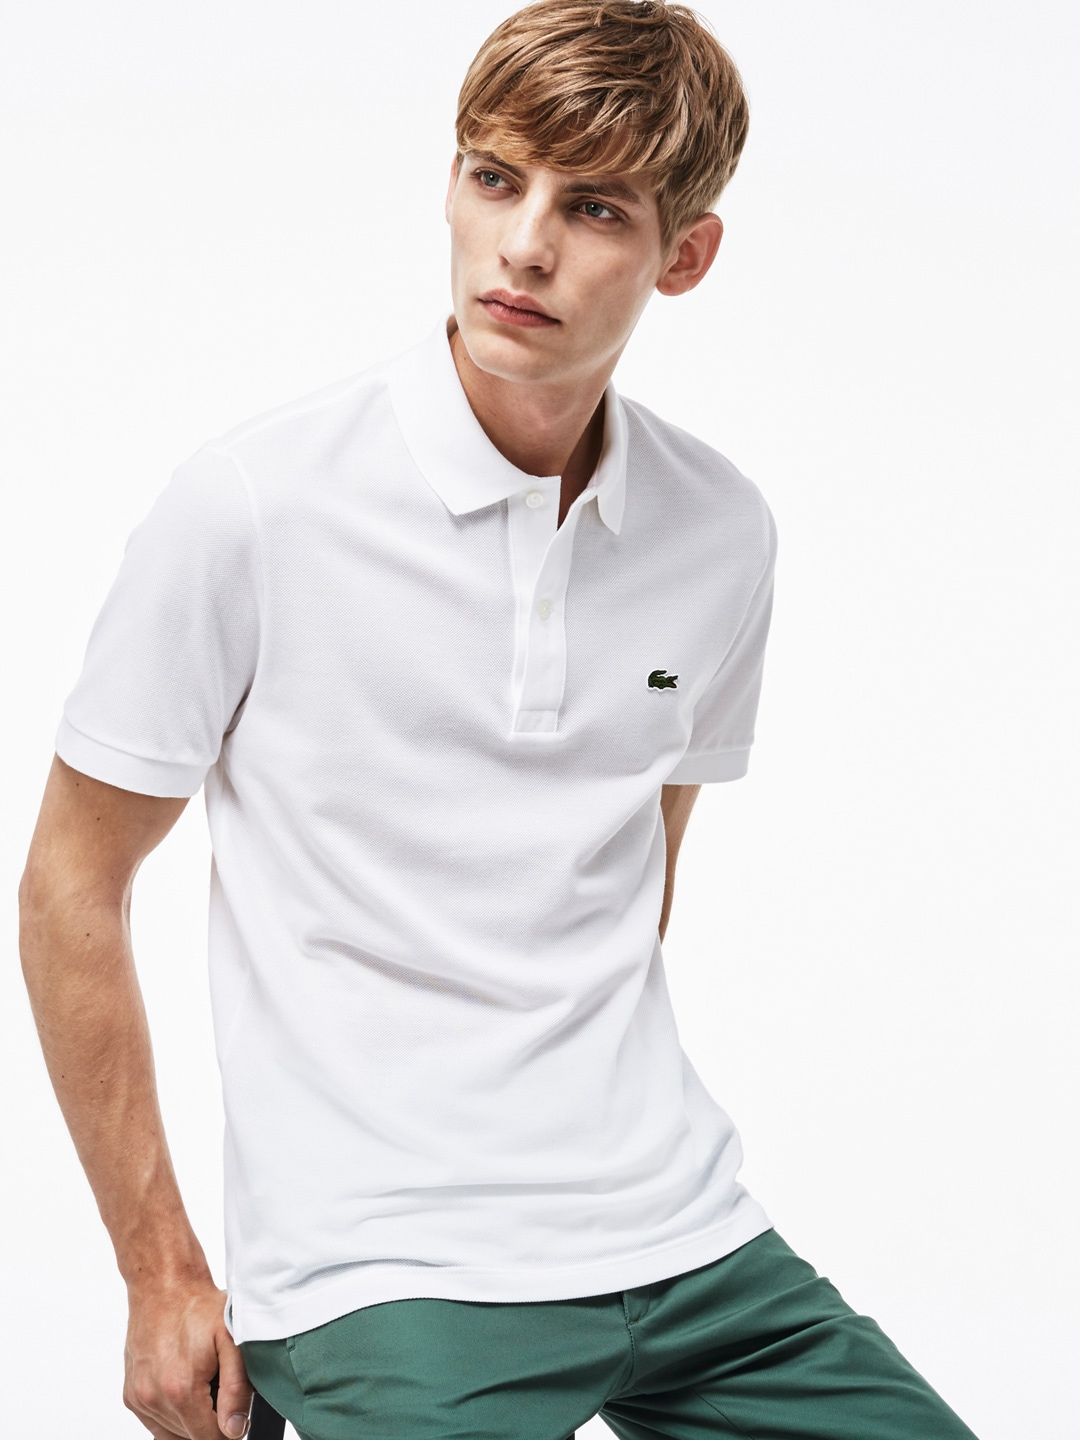 a7873f14462d Lacoste Polo Shirts India Online